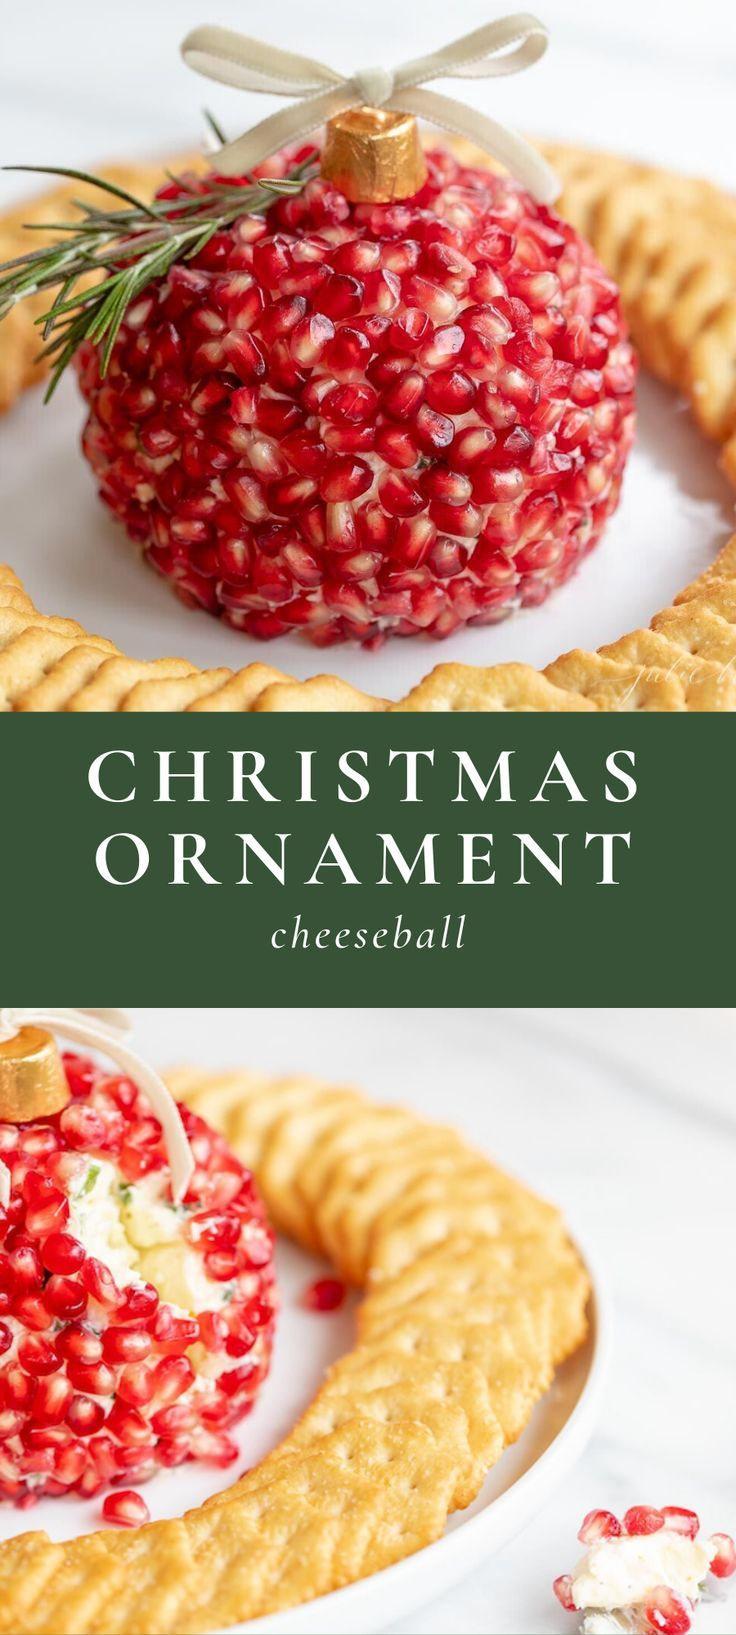 Ornament Cheeseball The Cutest Pomegranate Christmas Cheese Ball Cheese Ball Recipes Cheese Ball Christmas Appetizers